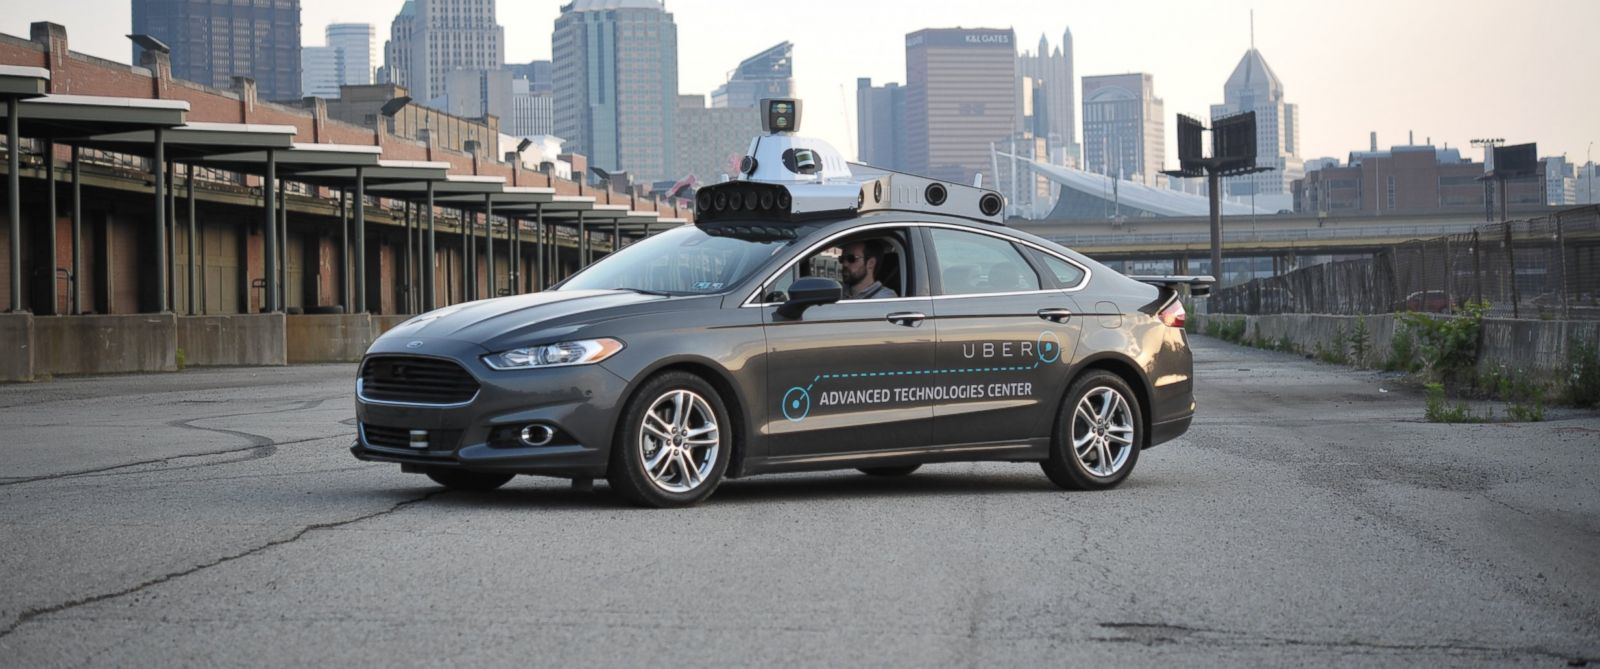 uber is now testing self driving cars in pittsburgh the gazette review. Black Bedroom Furniture Sets. Home Design Ideas